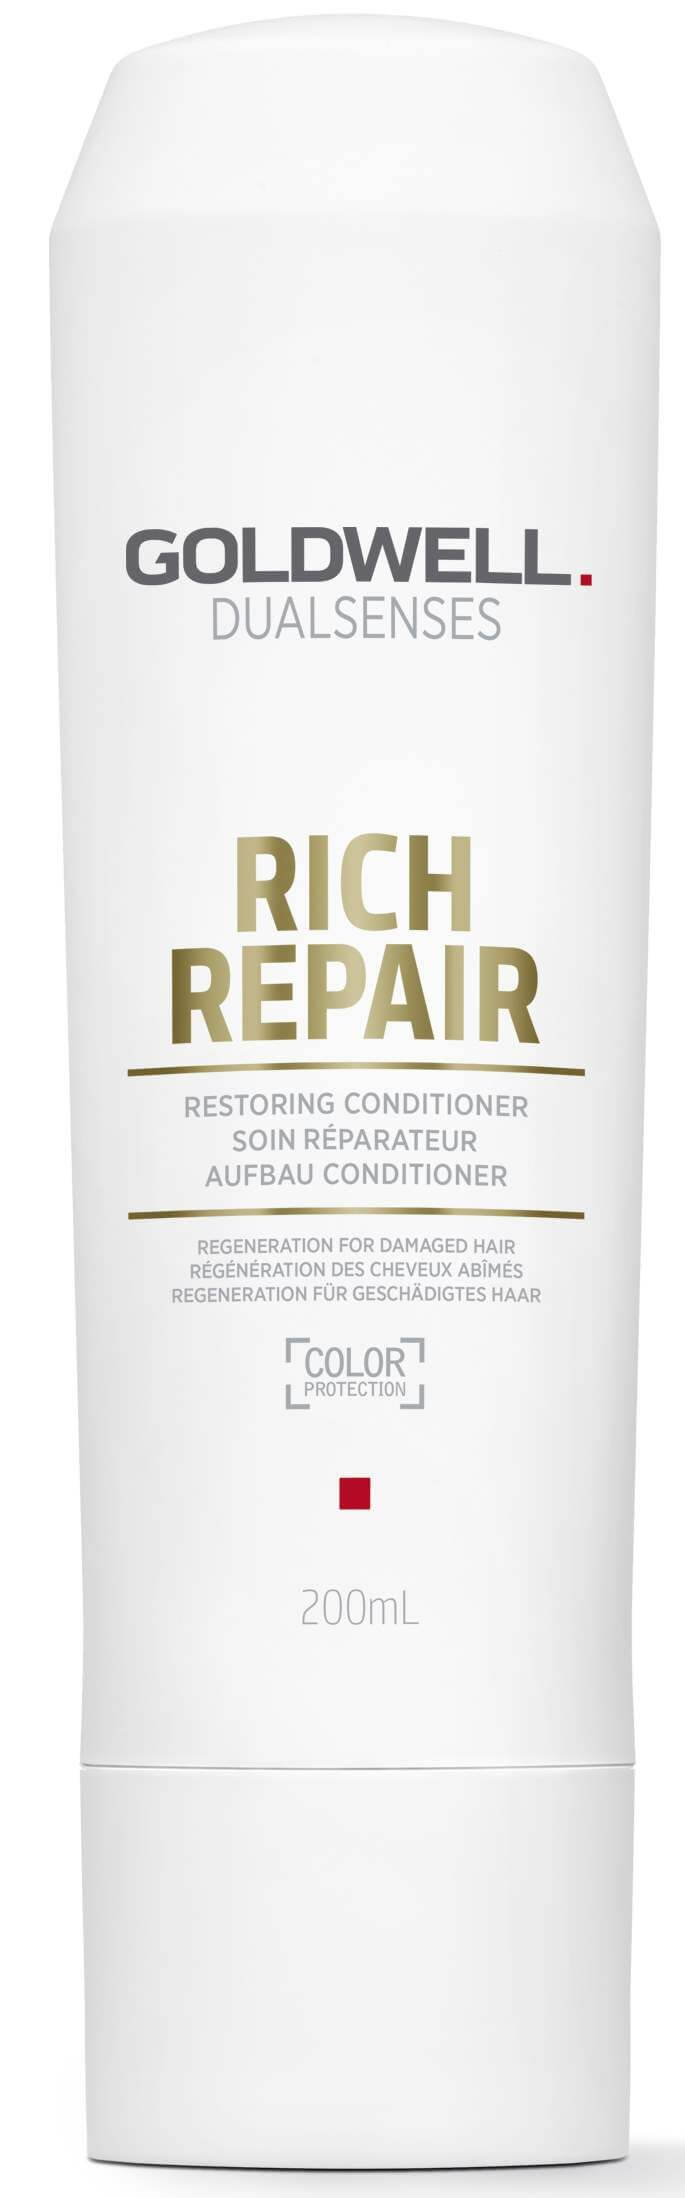 Dualsenses Rich Repair Restoring Conditioner.